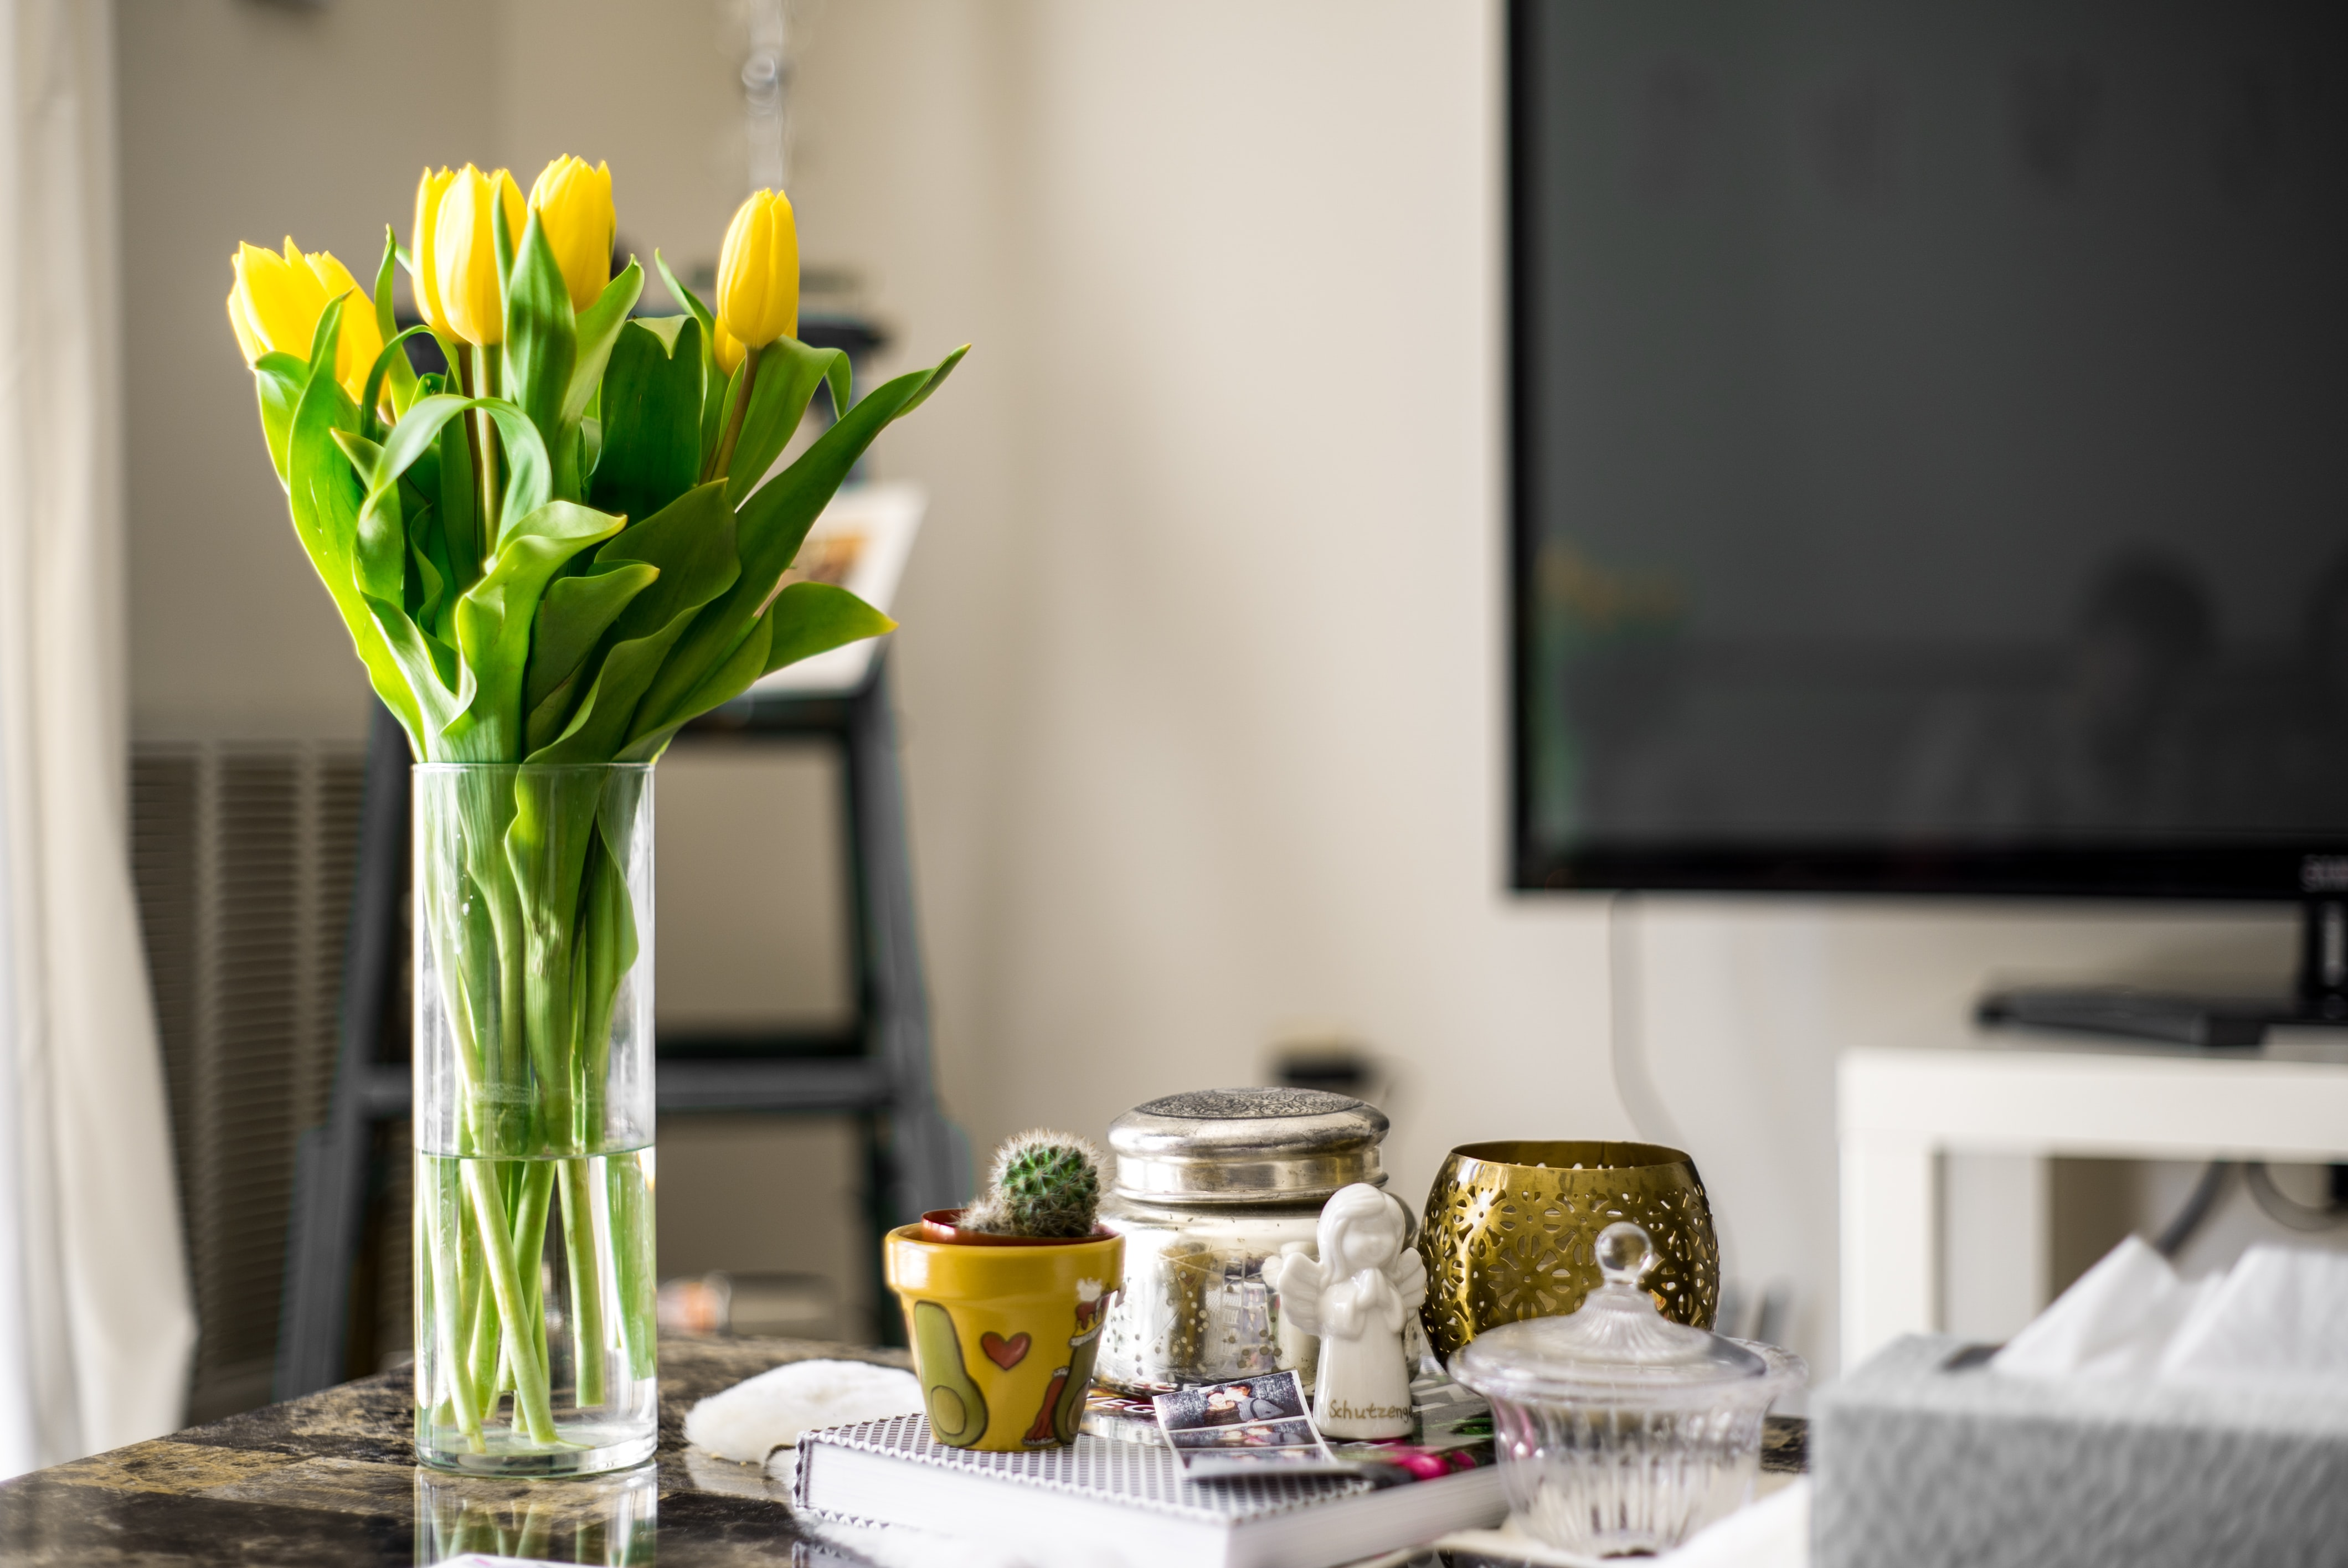 yellow tulip flowers inside vase on table